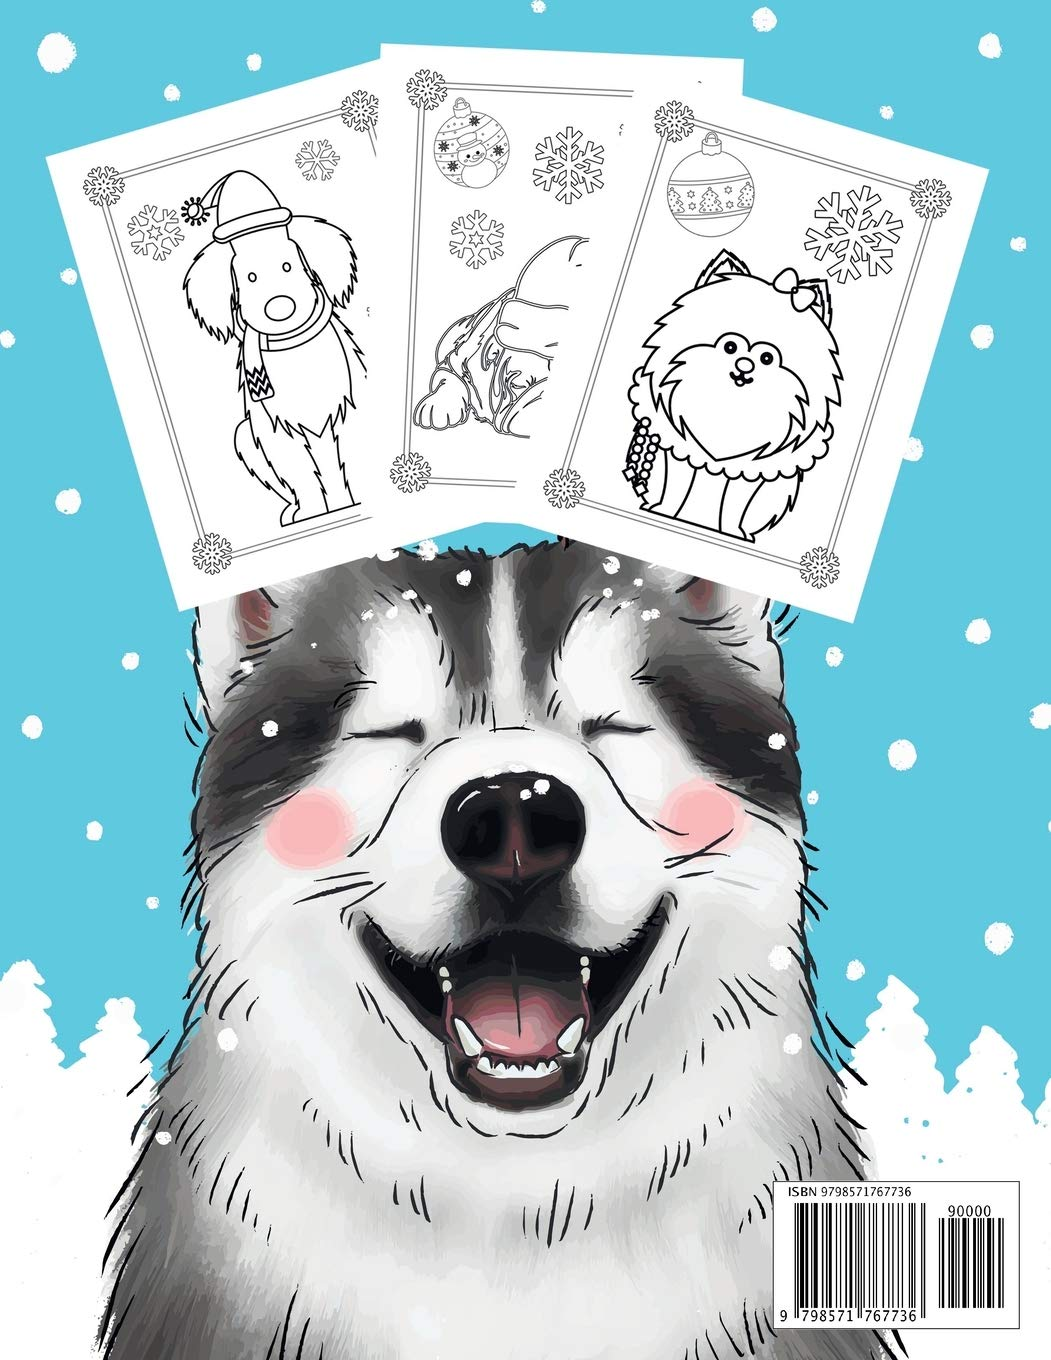 Cute Christmas Dogs Coloring Book For Kids Gifts Ideas For Puppy Lover And Puppies Owners Dog Lover Gifts For Toddlers Kids Ages 4 8 Girls Ages 8 12 Or Adult Relaxation Crayola Khim